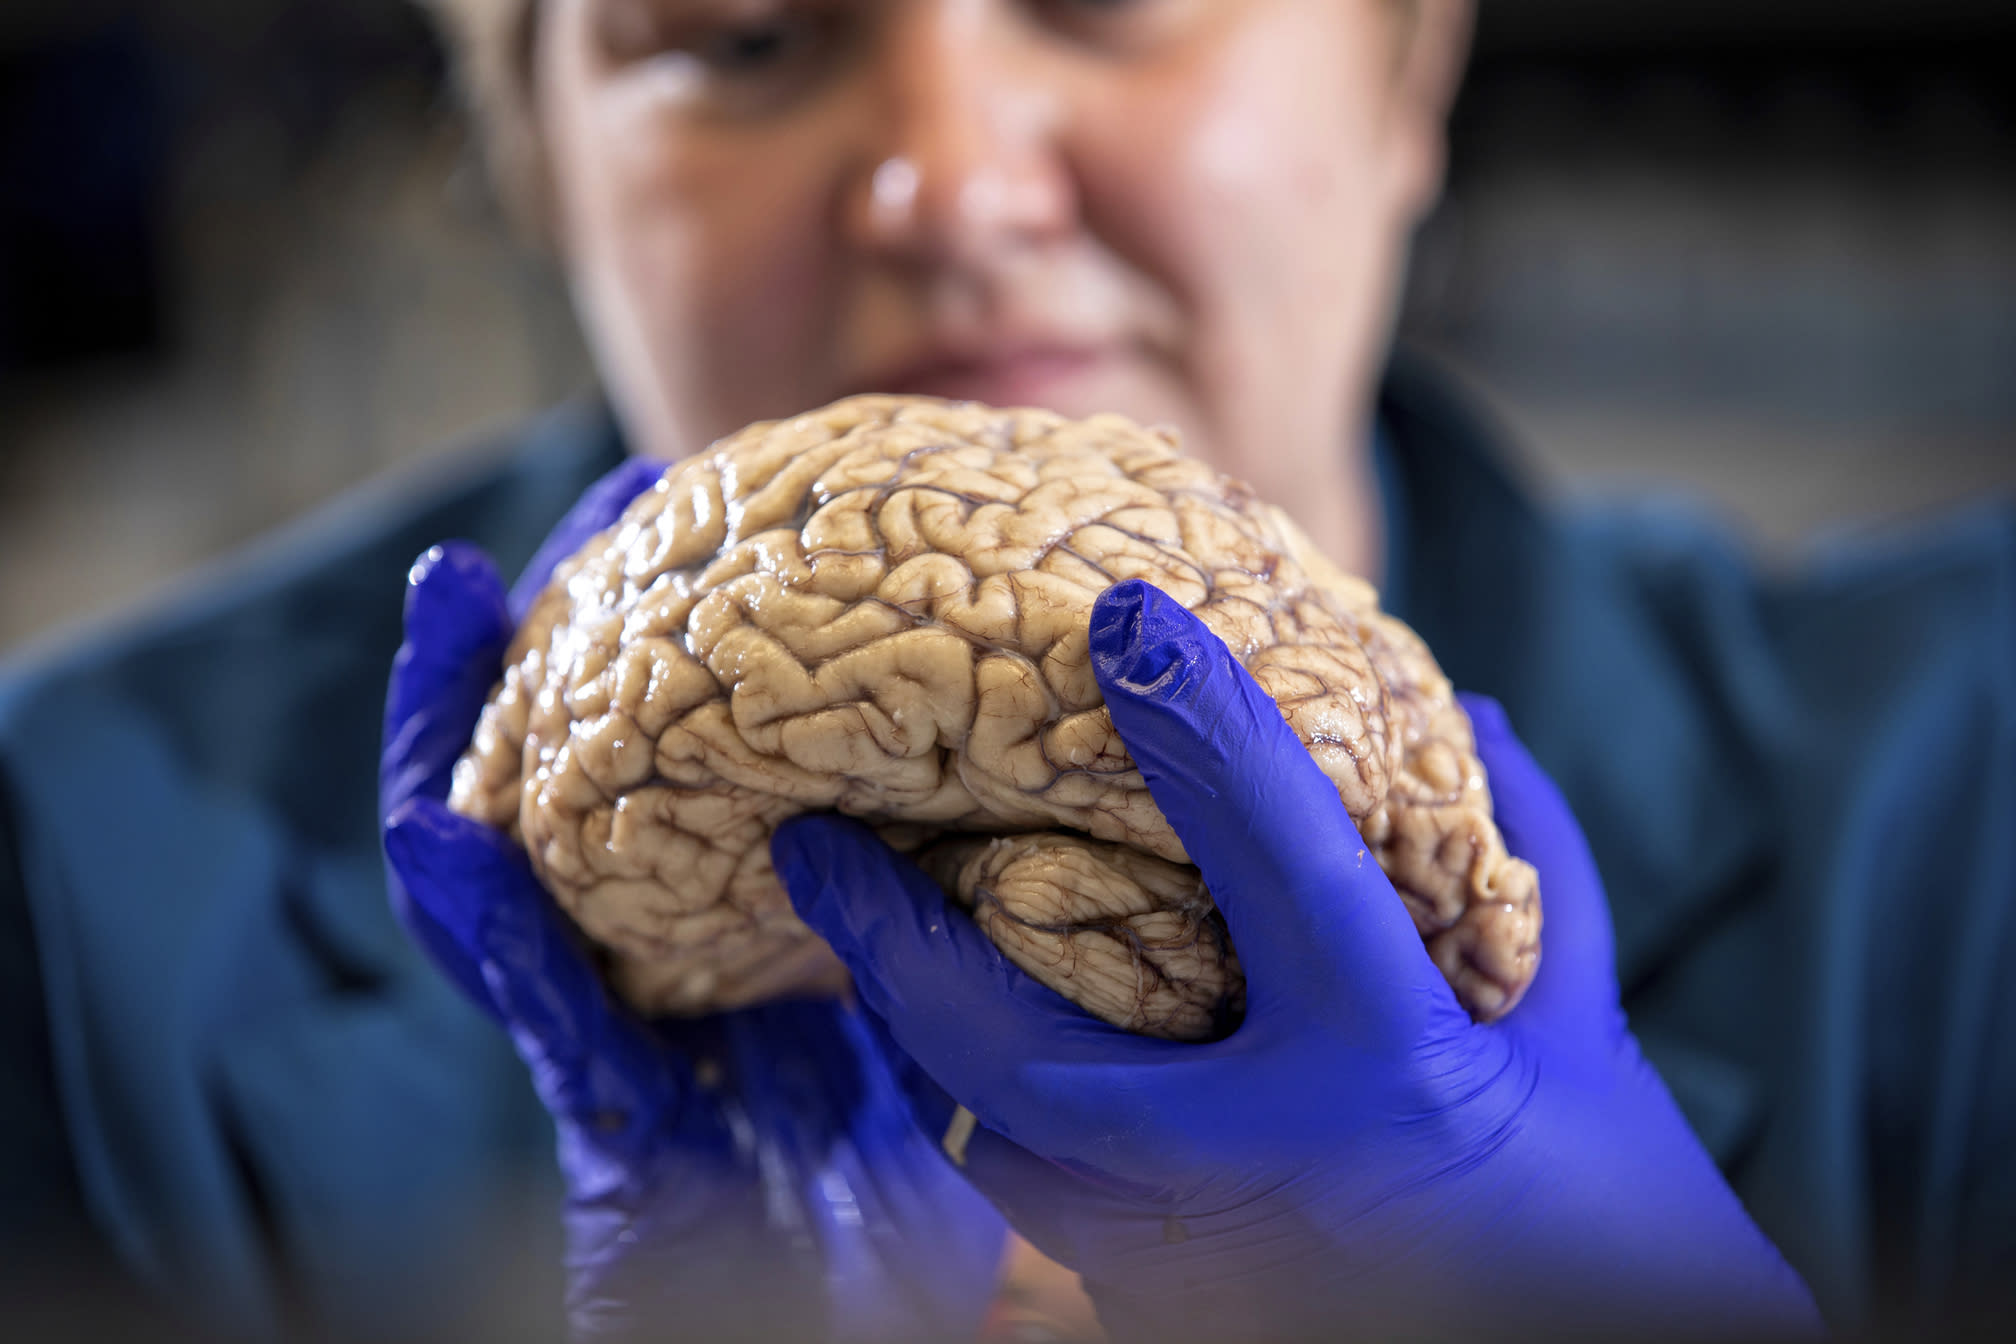 Scientists rethink Alzheimer's, diversifying the drug search - Yahoo Finance